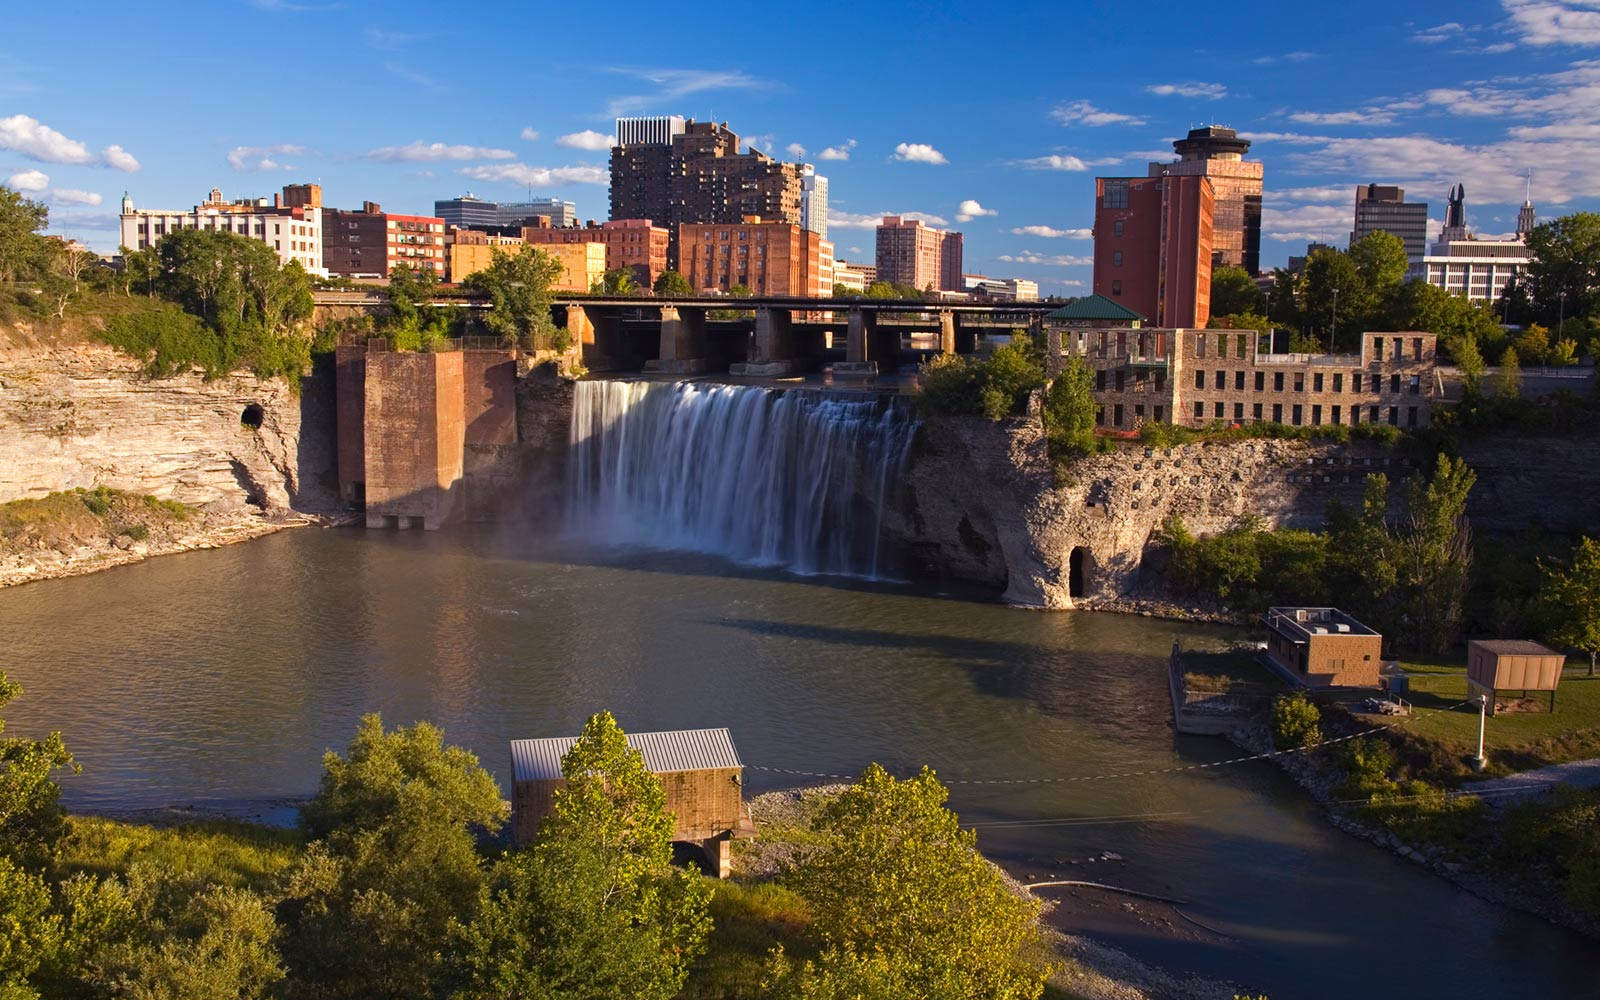 10 of the best American cities to live comfortably on $40,000 a year